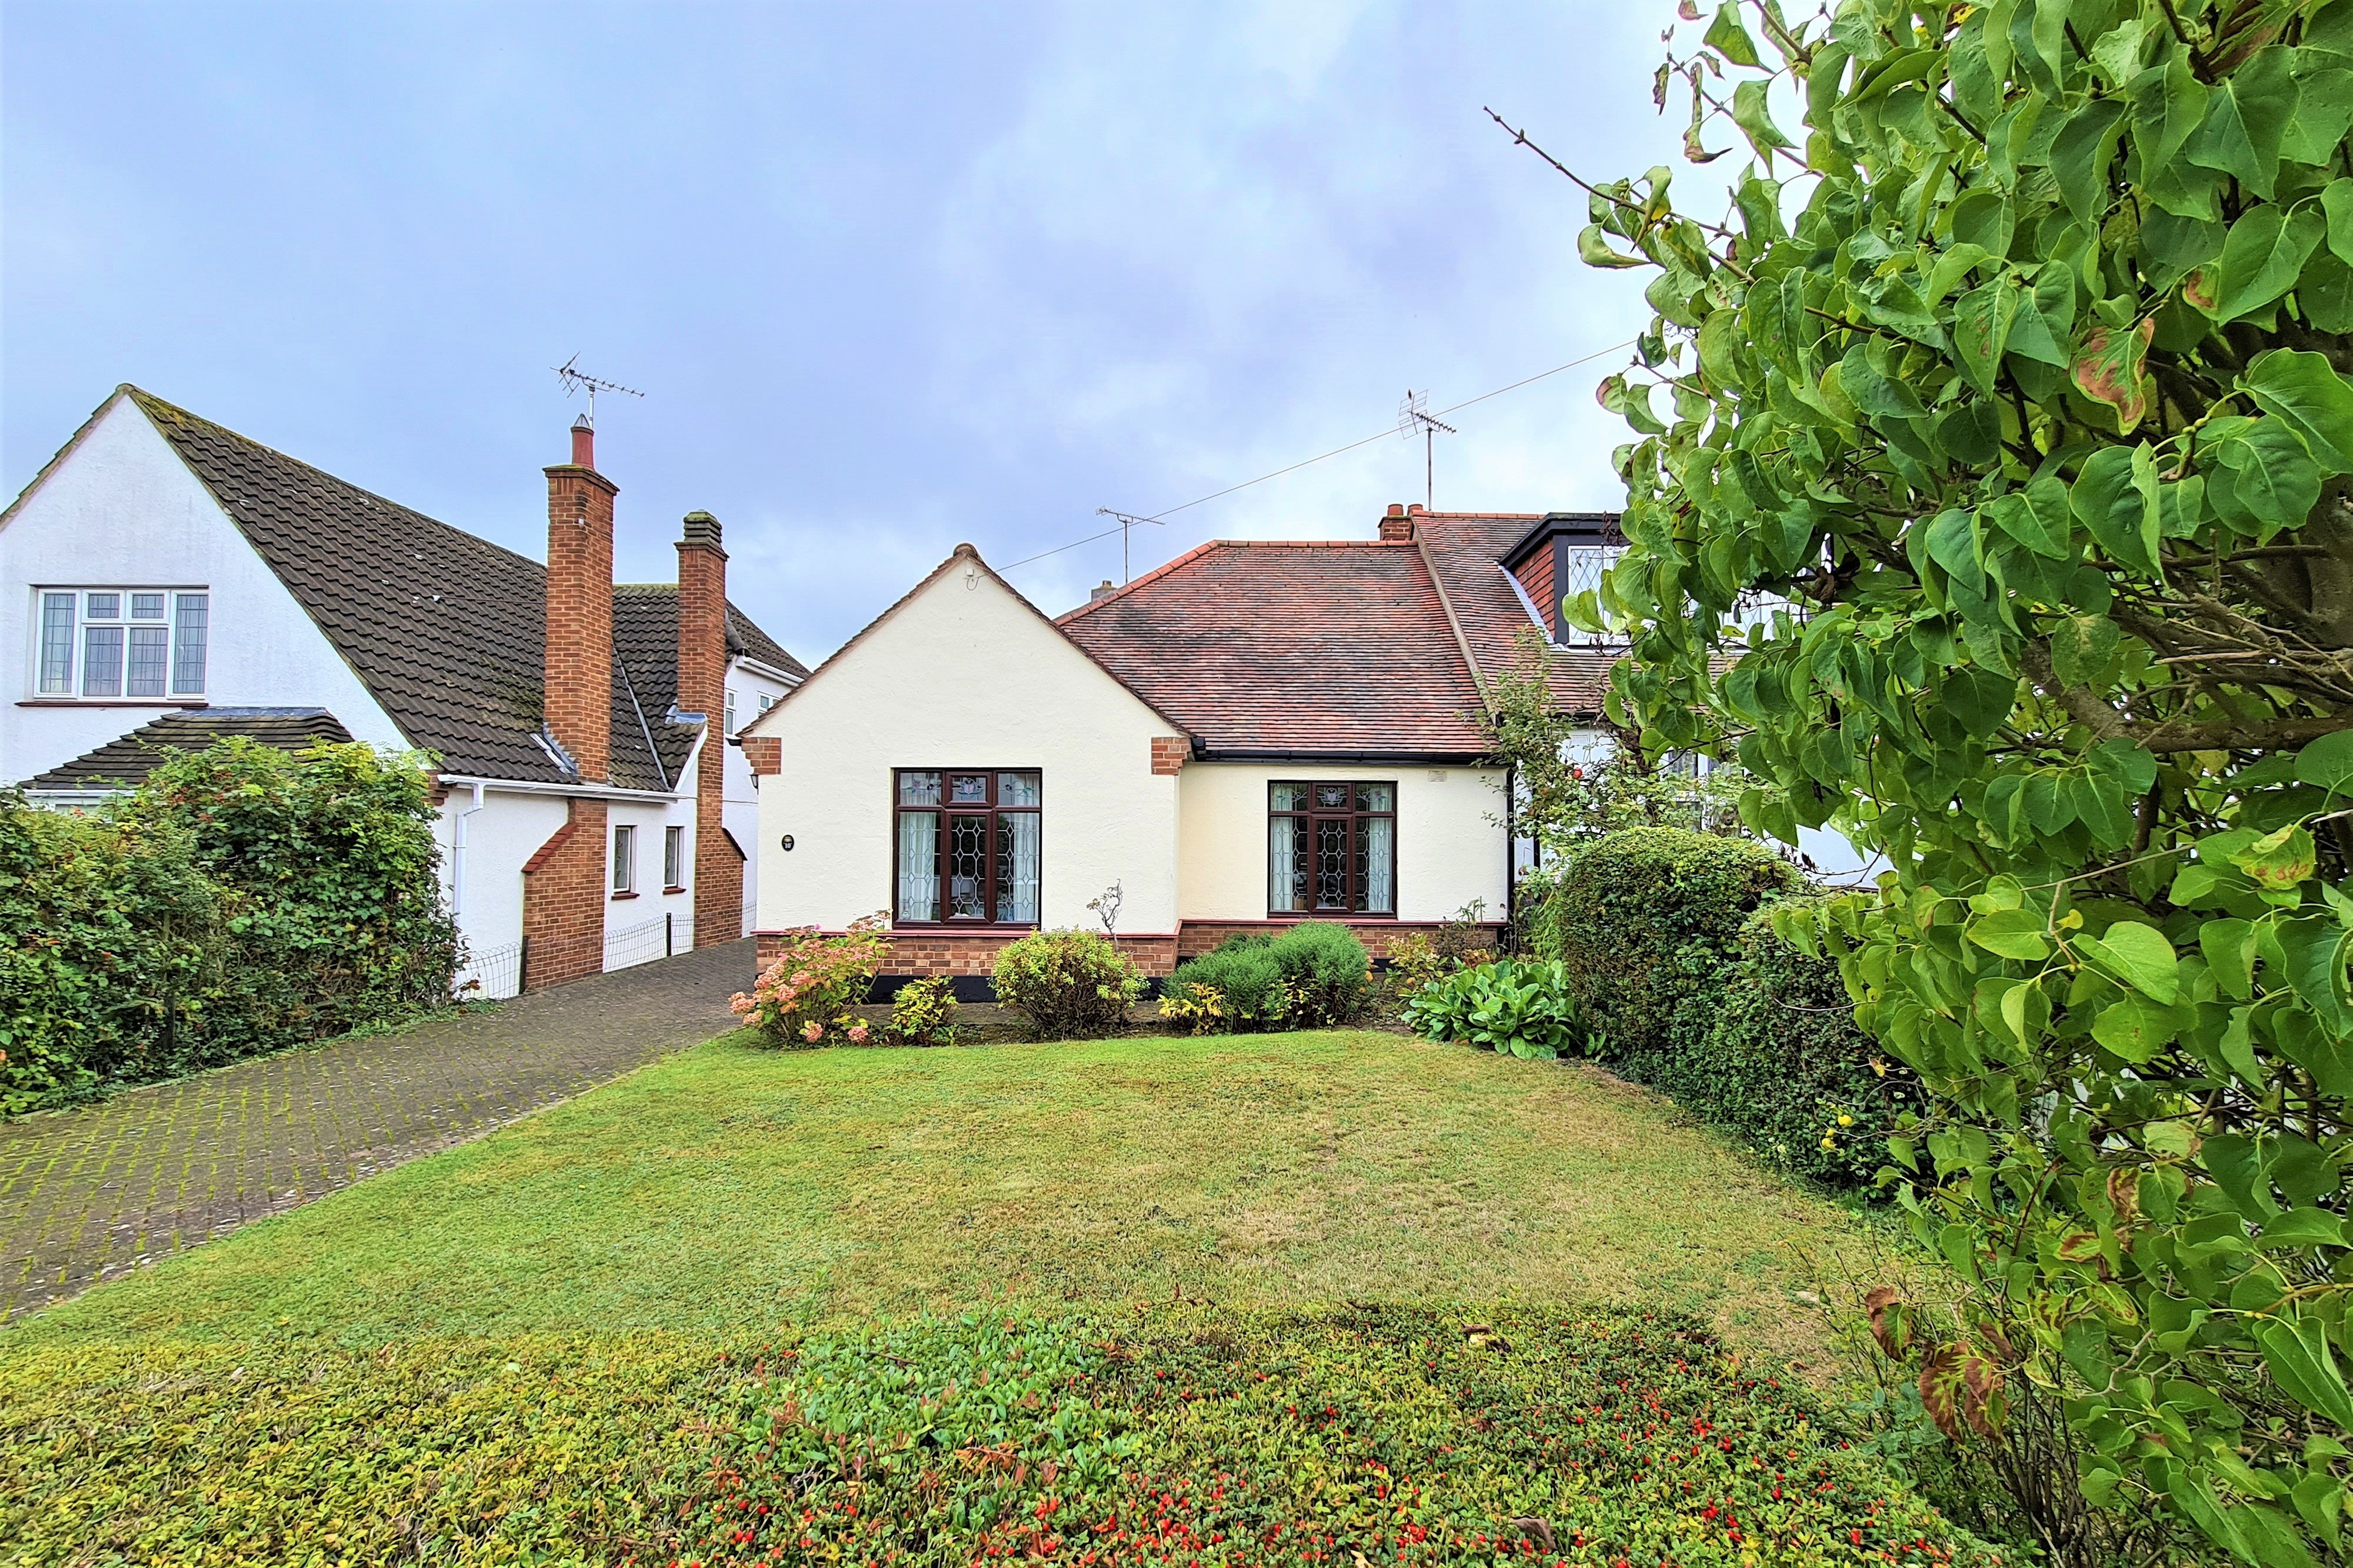 2 bed semi-detached bungalow for sale in Orchard Avenue, Rayleigh, SS6